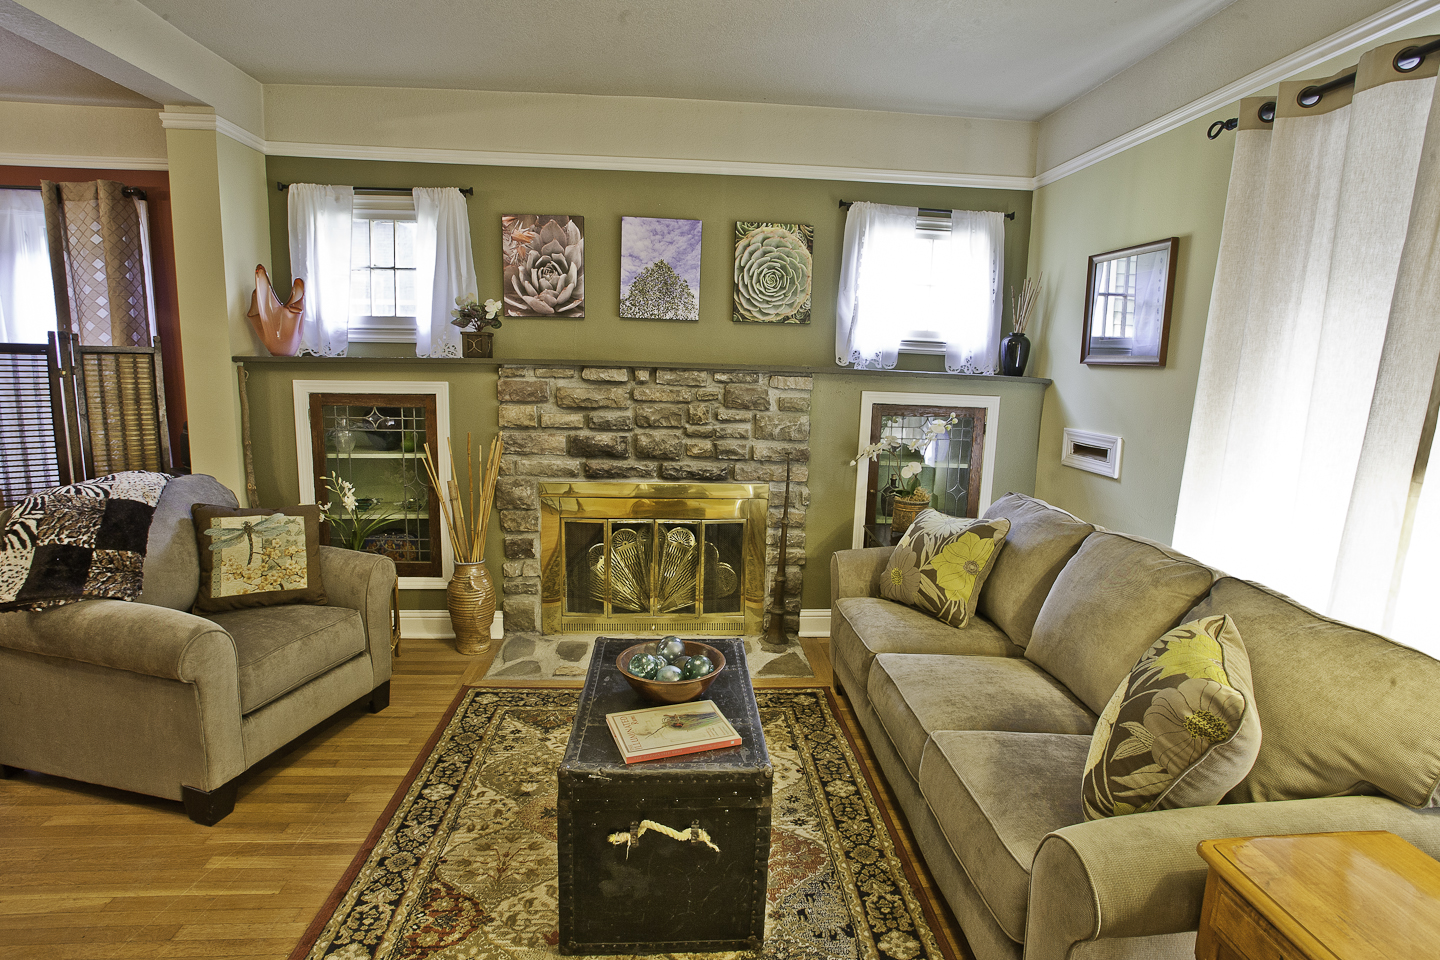 Craftsman charm throughout this lovely home